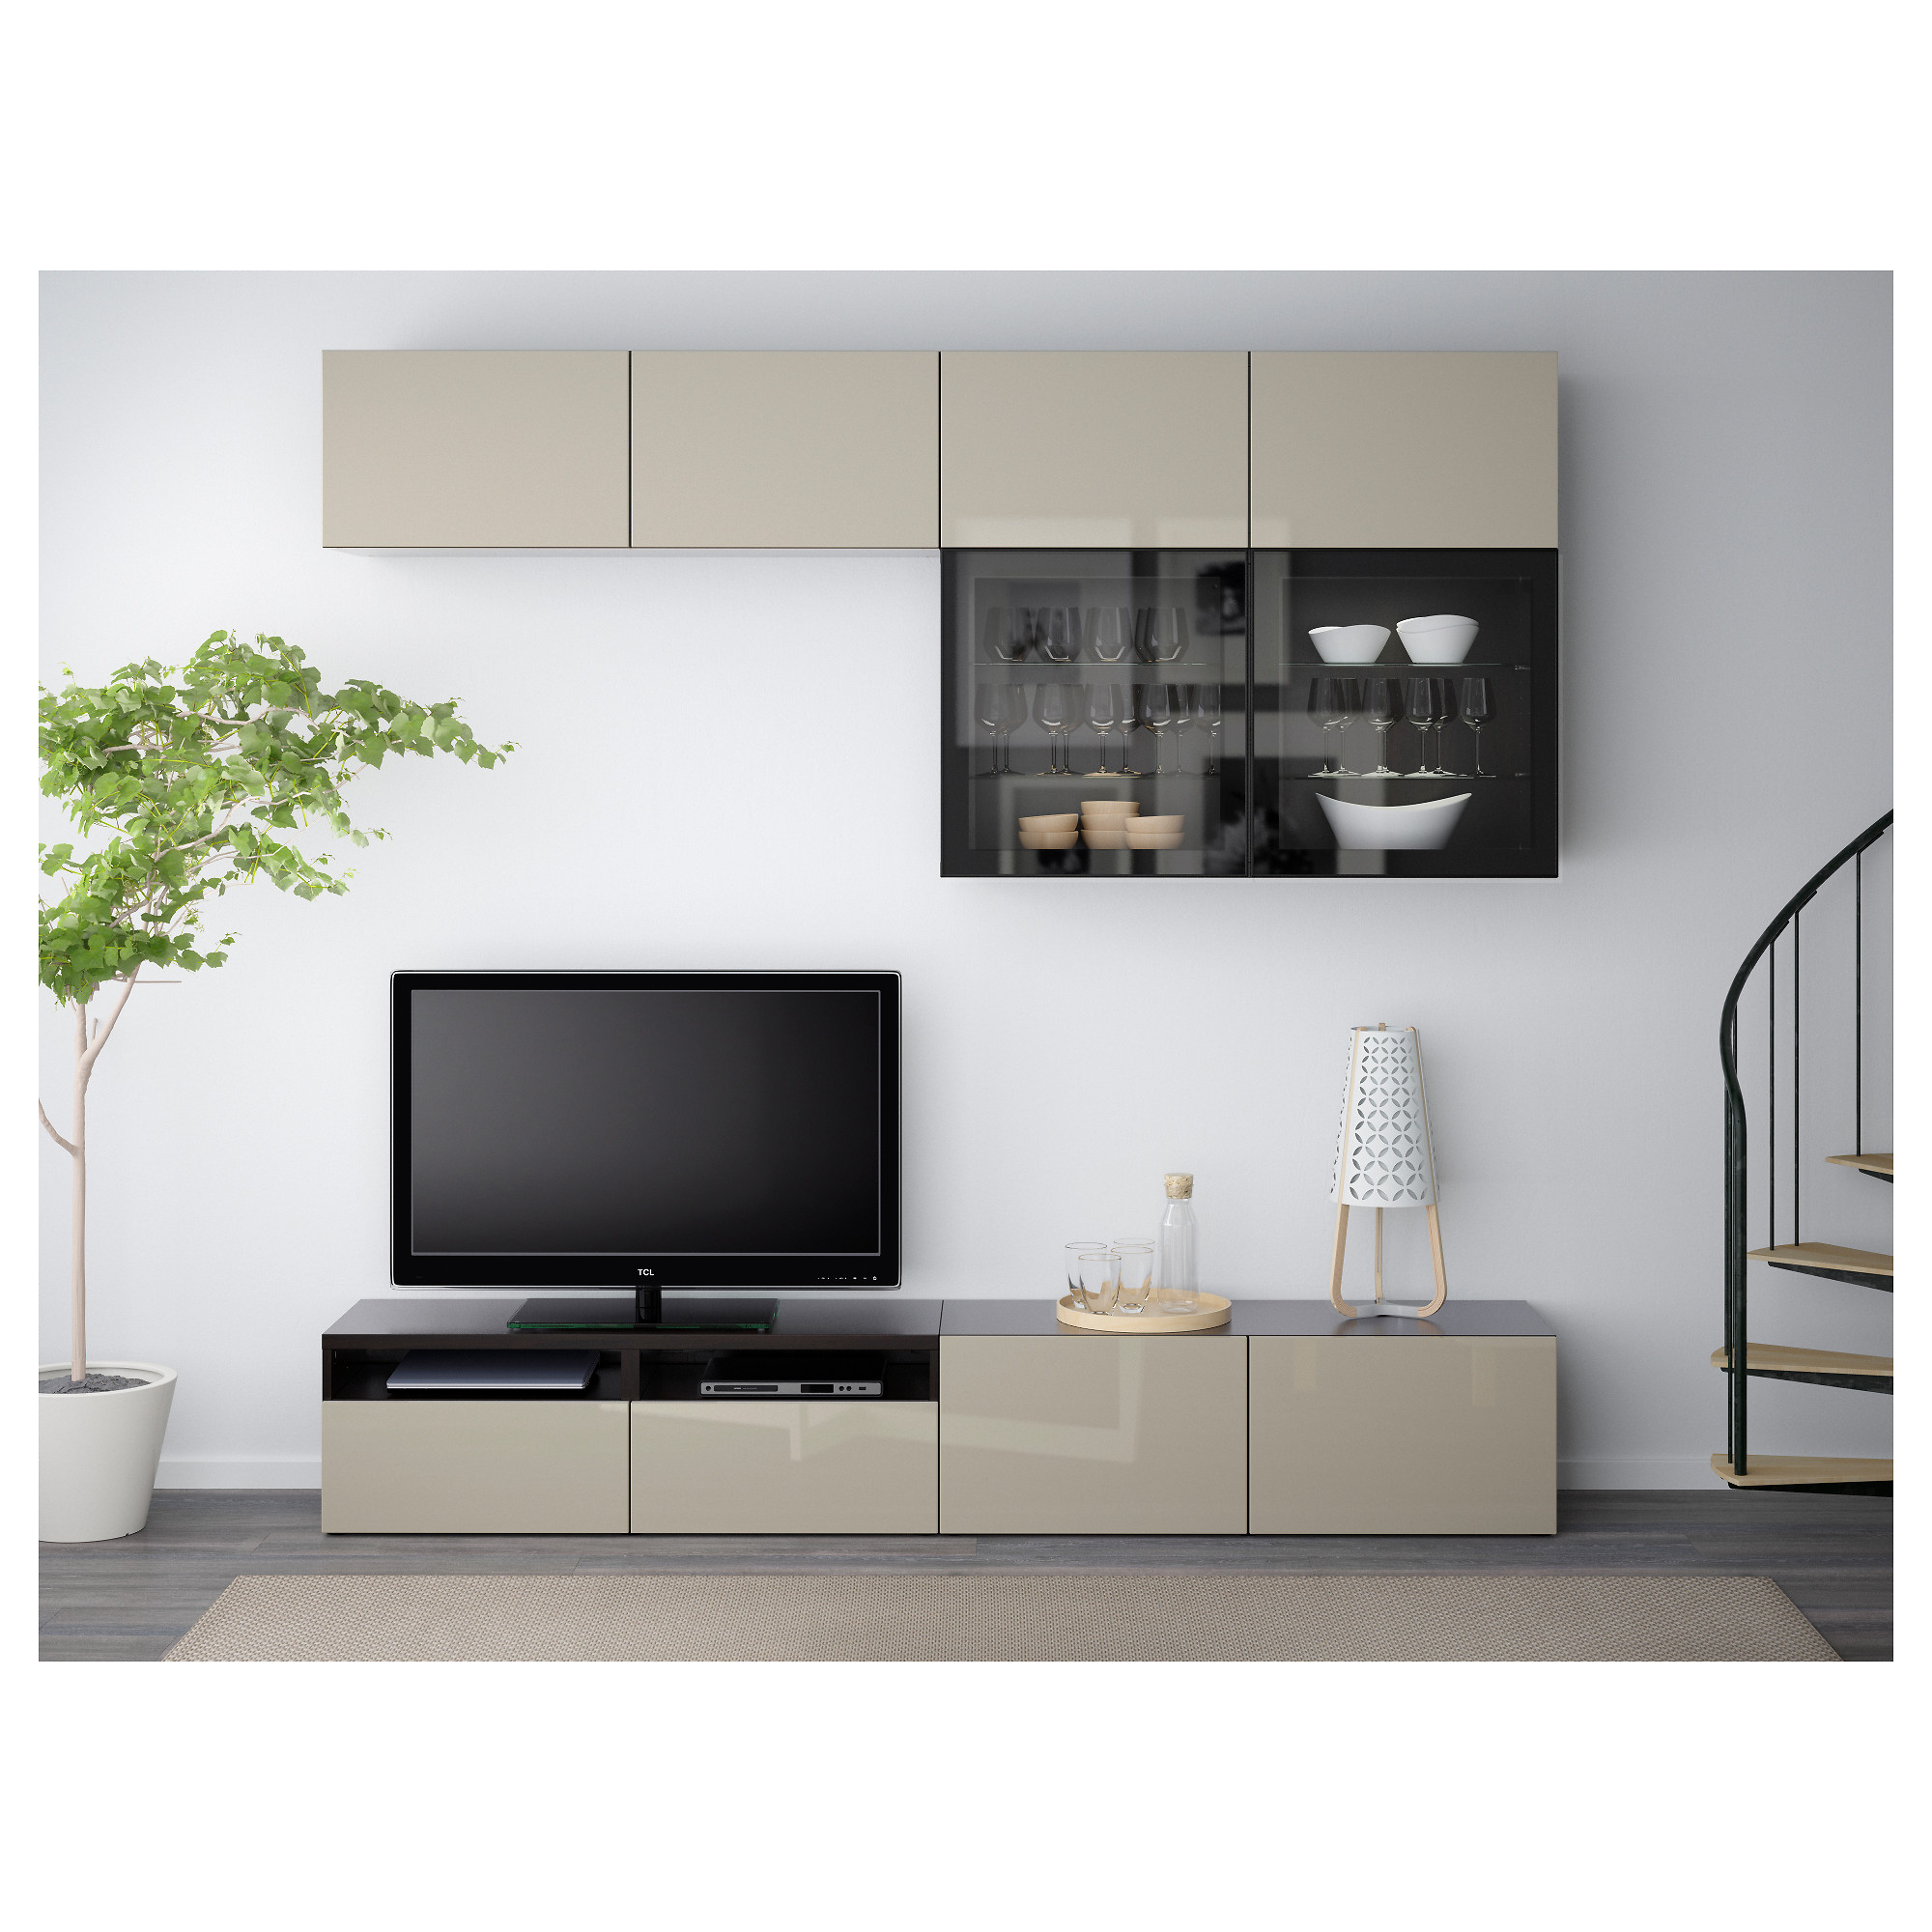 Best Combinaison Rangt Tv Vitrines Brun Noir Lappviken Sindvik  # Magasin Ikea Meuble Tv Marron